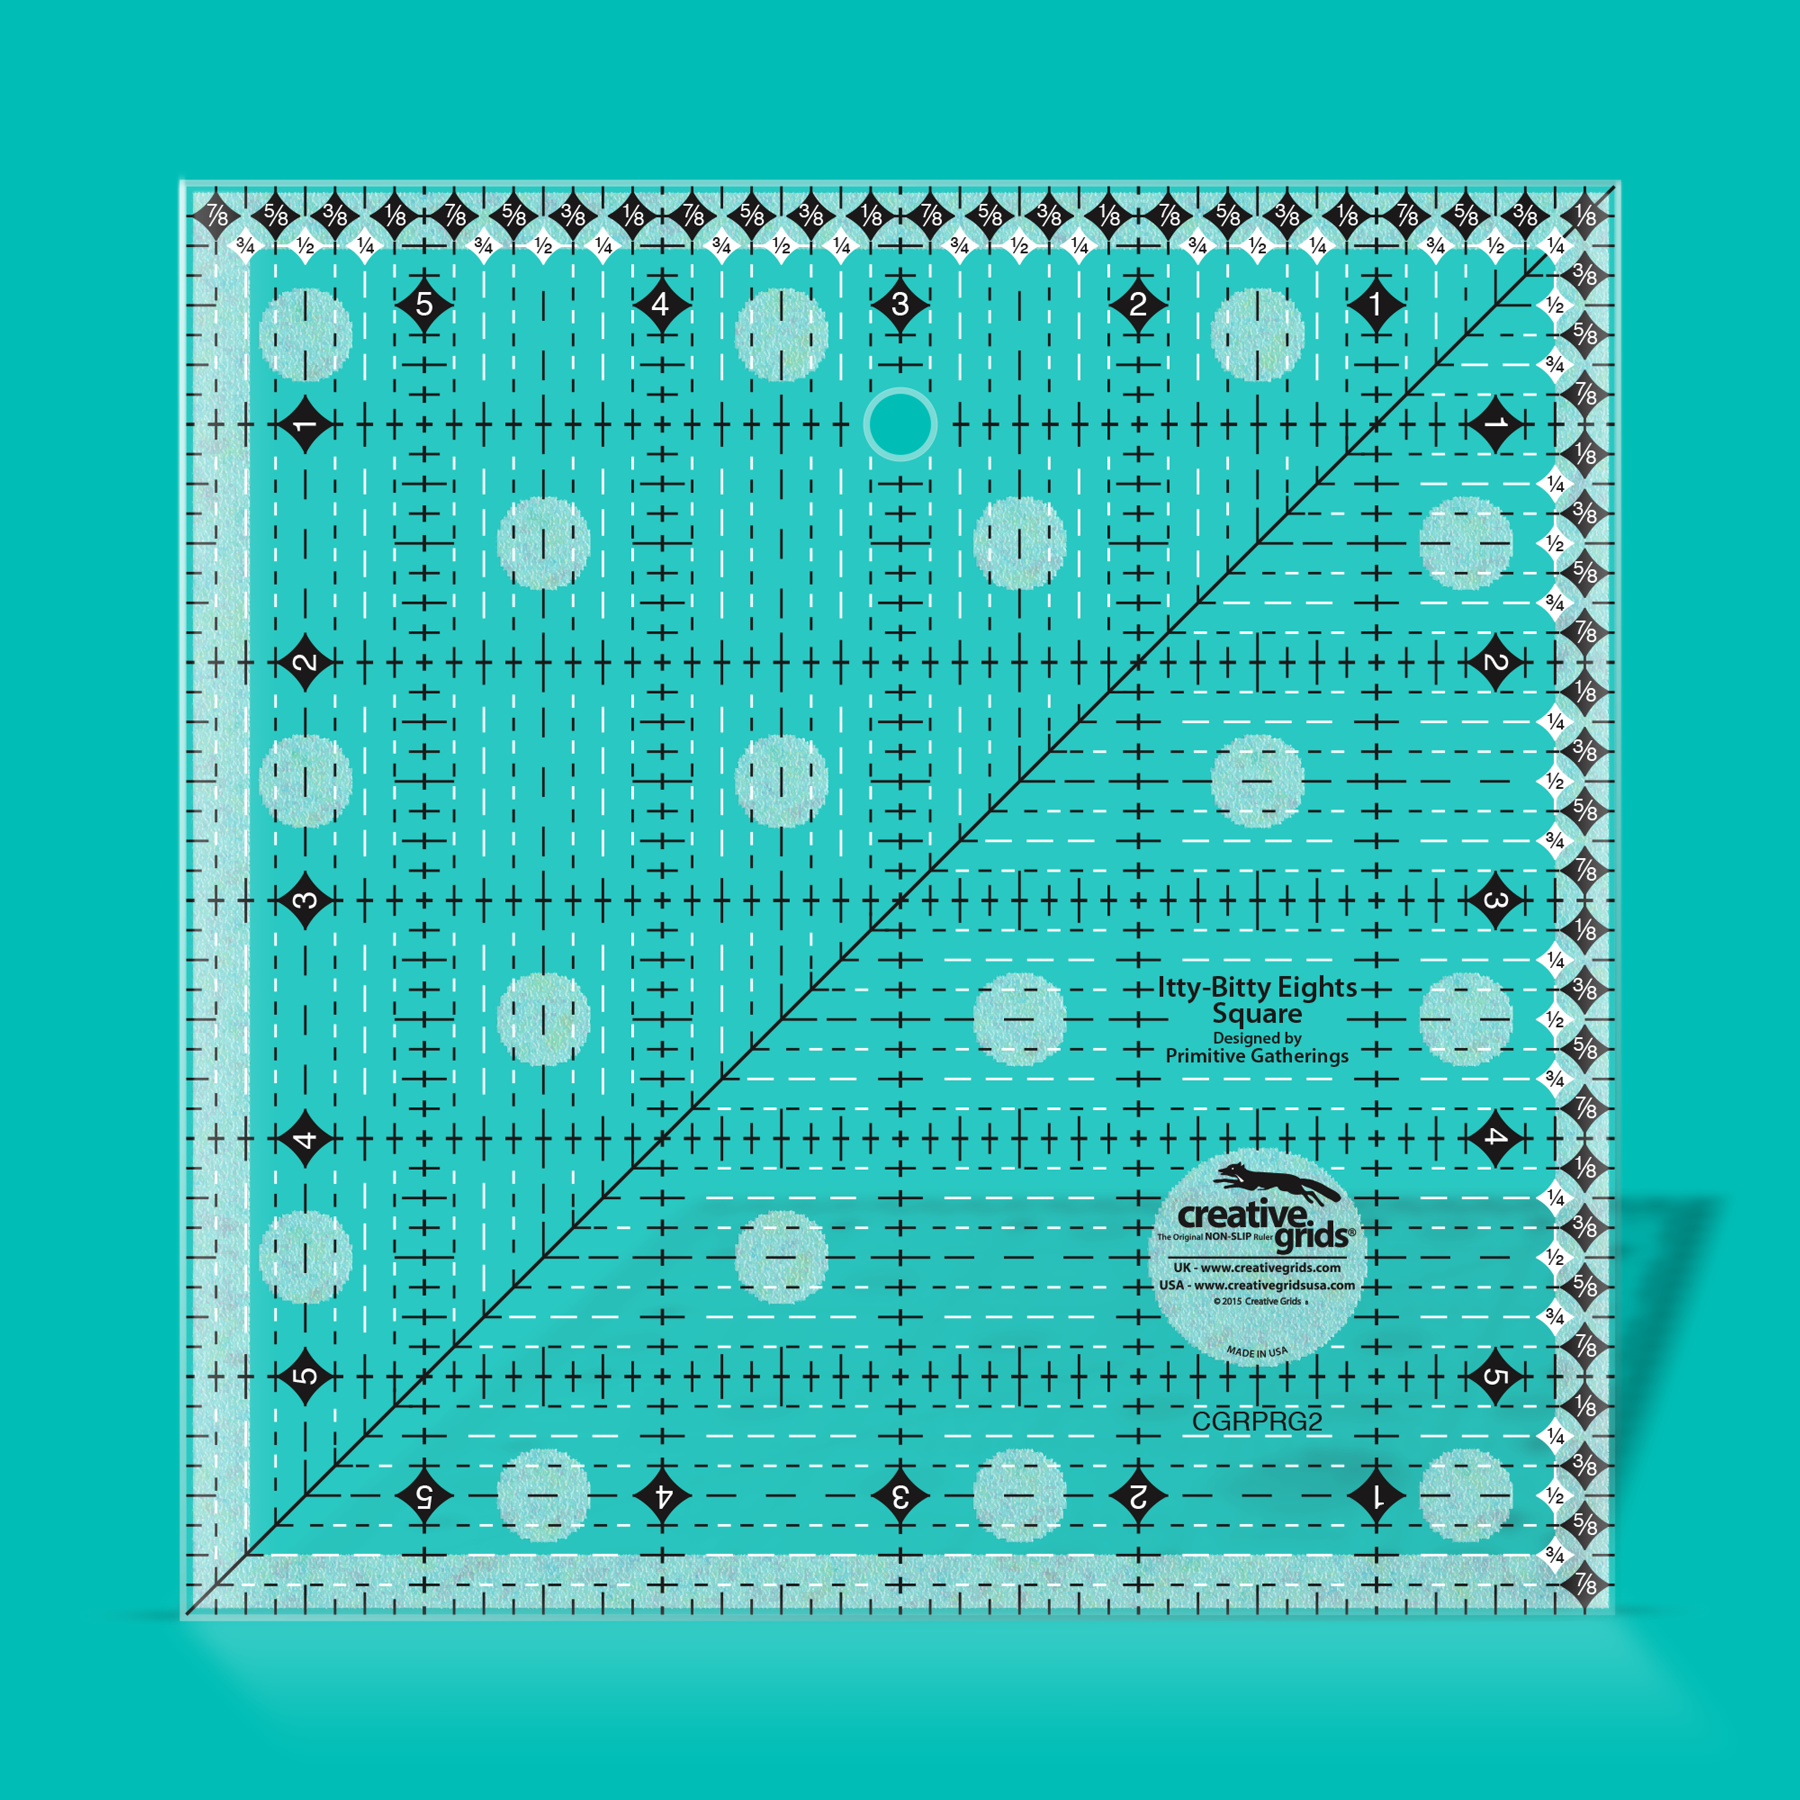 Creative Grids Itty Bitty Eights 6